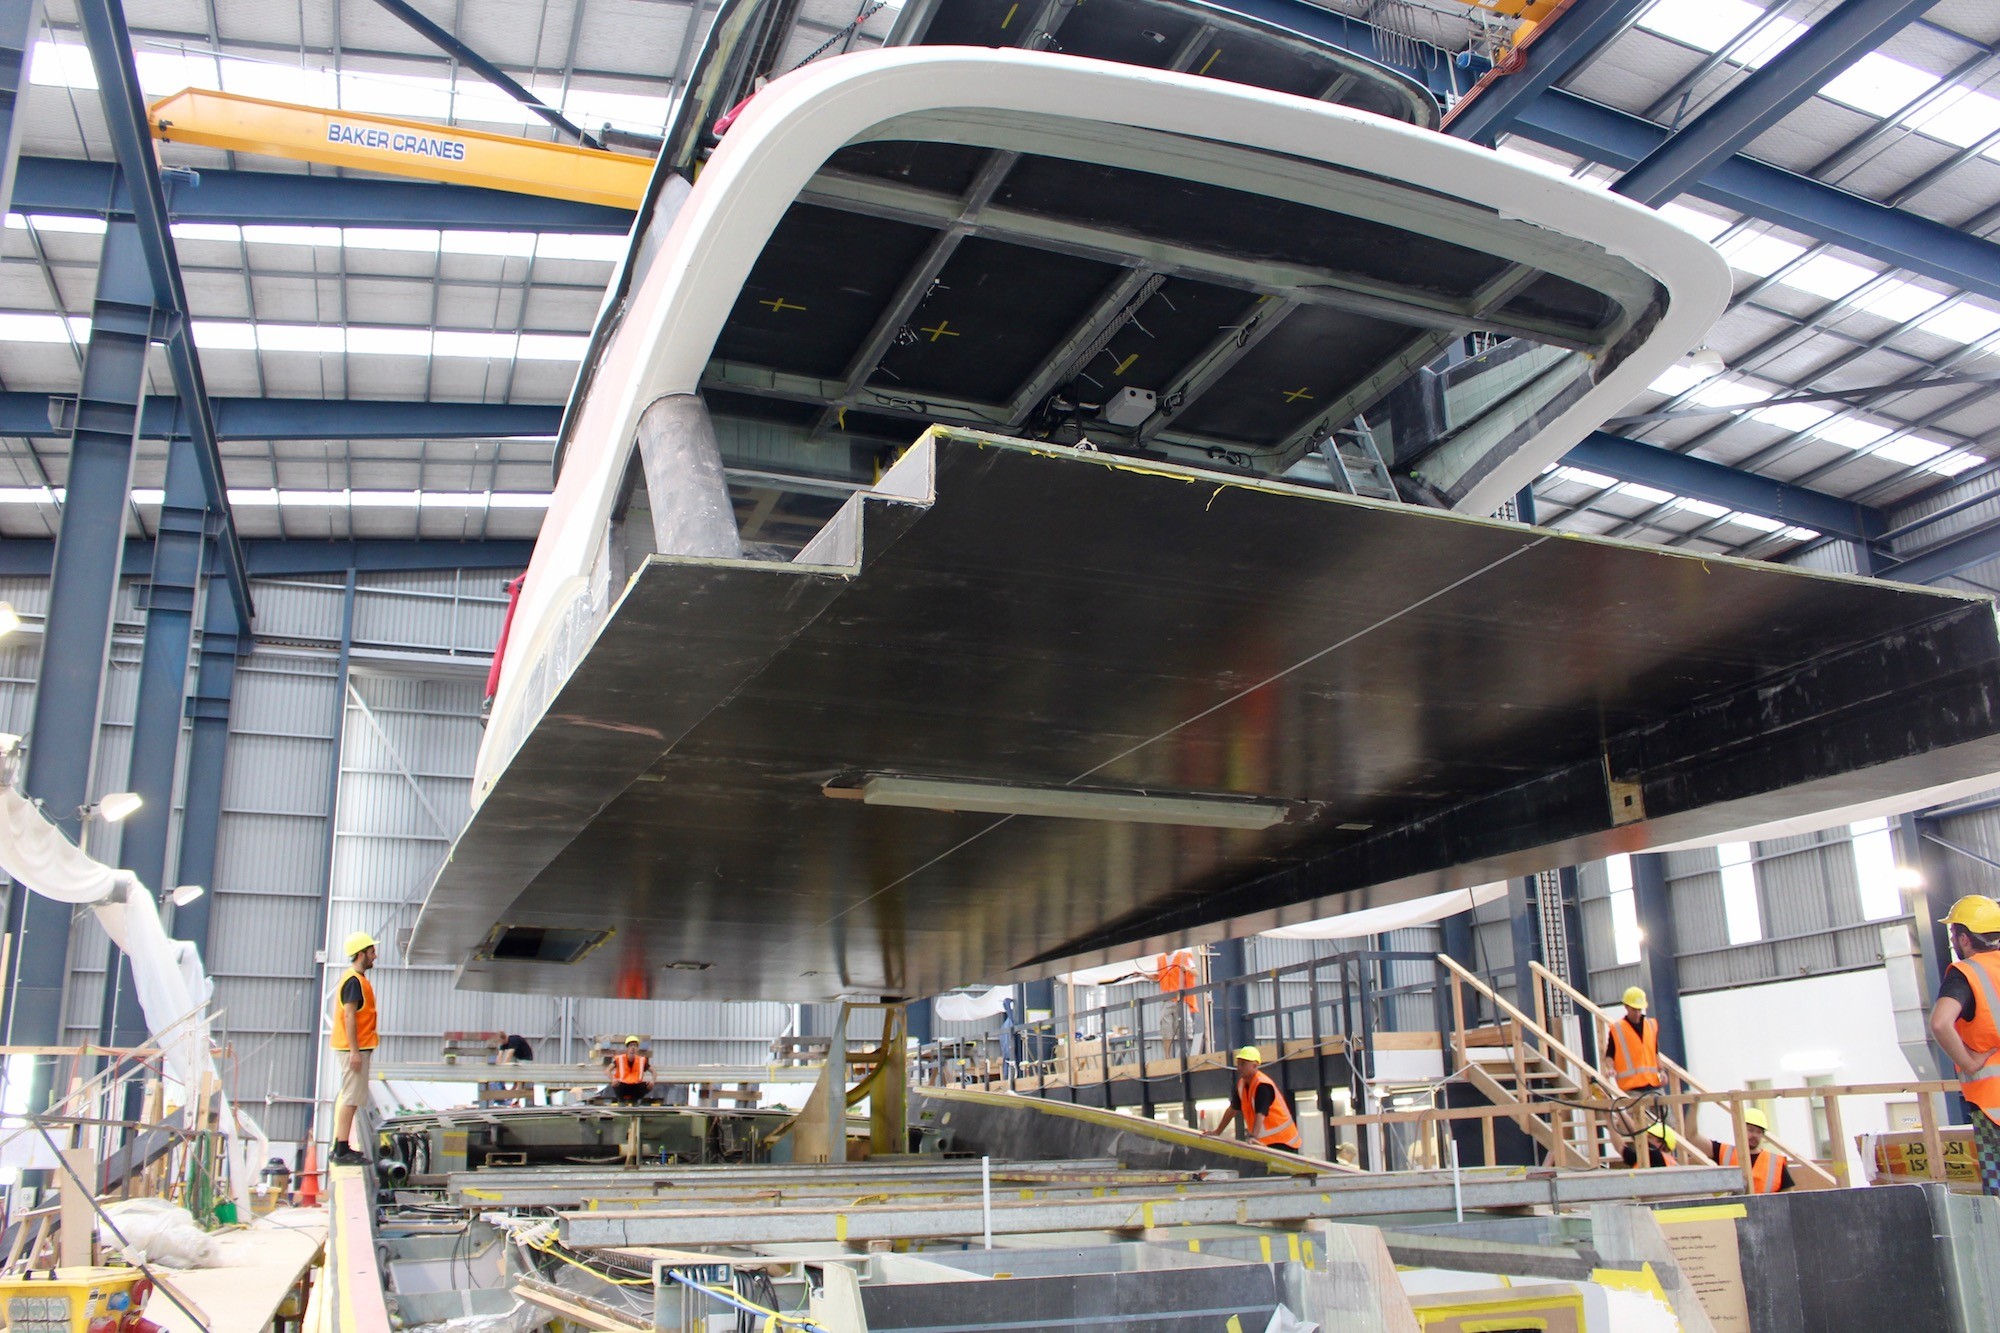 Hull 1015 superstructure enters the shed and is lifted on to the hull – image Paige Cook